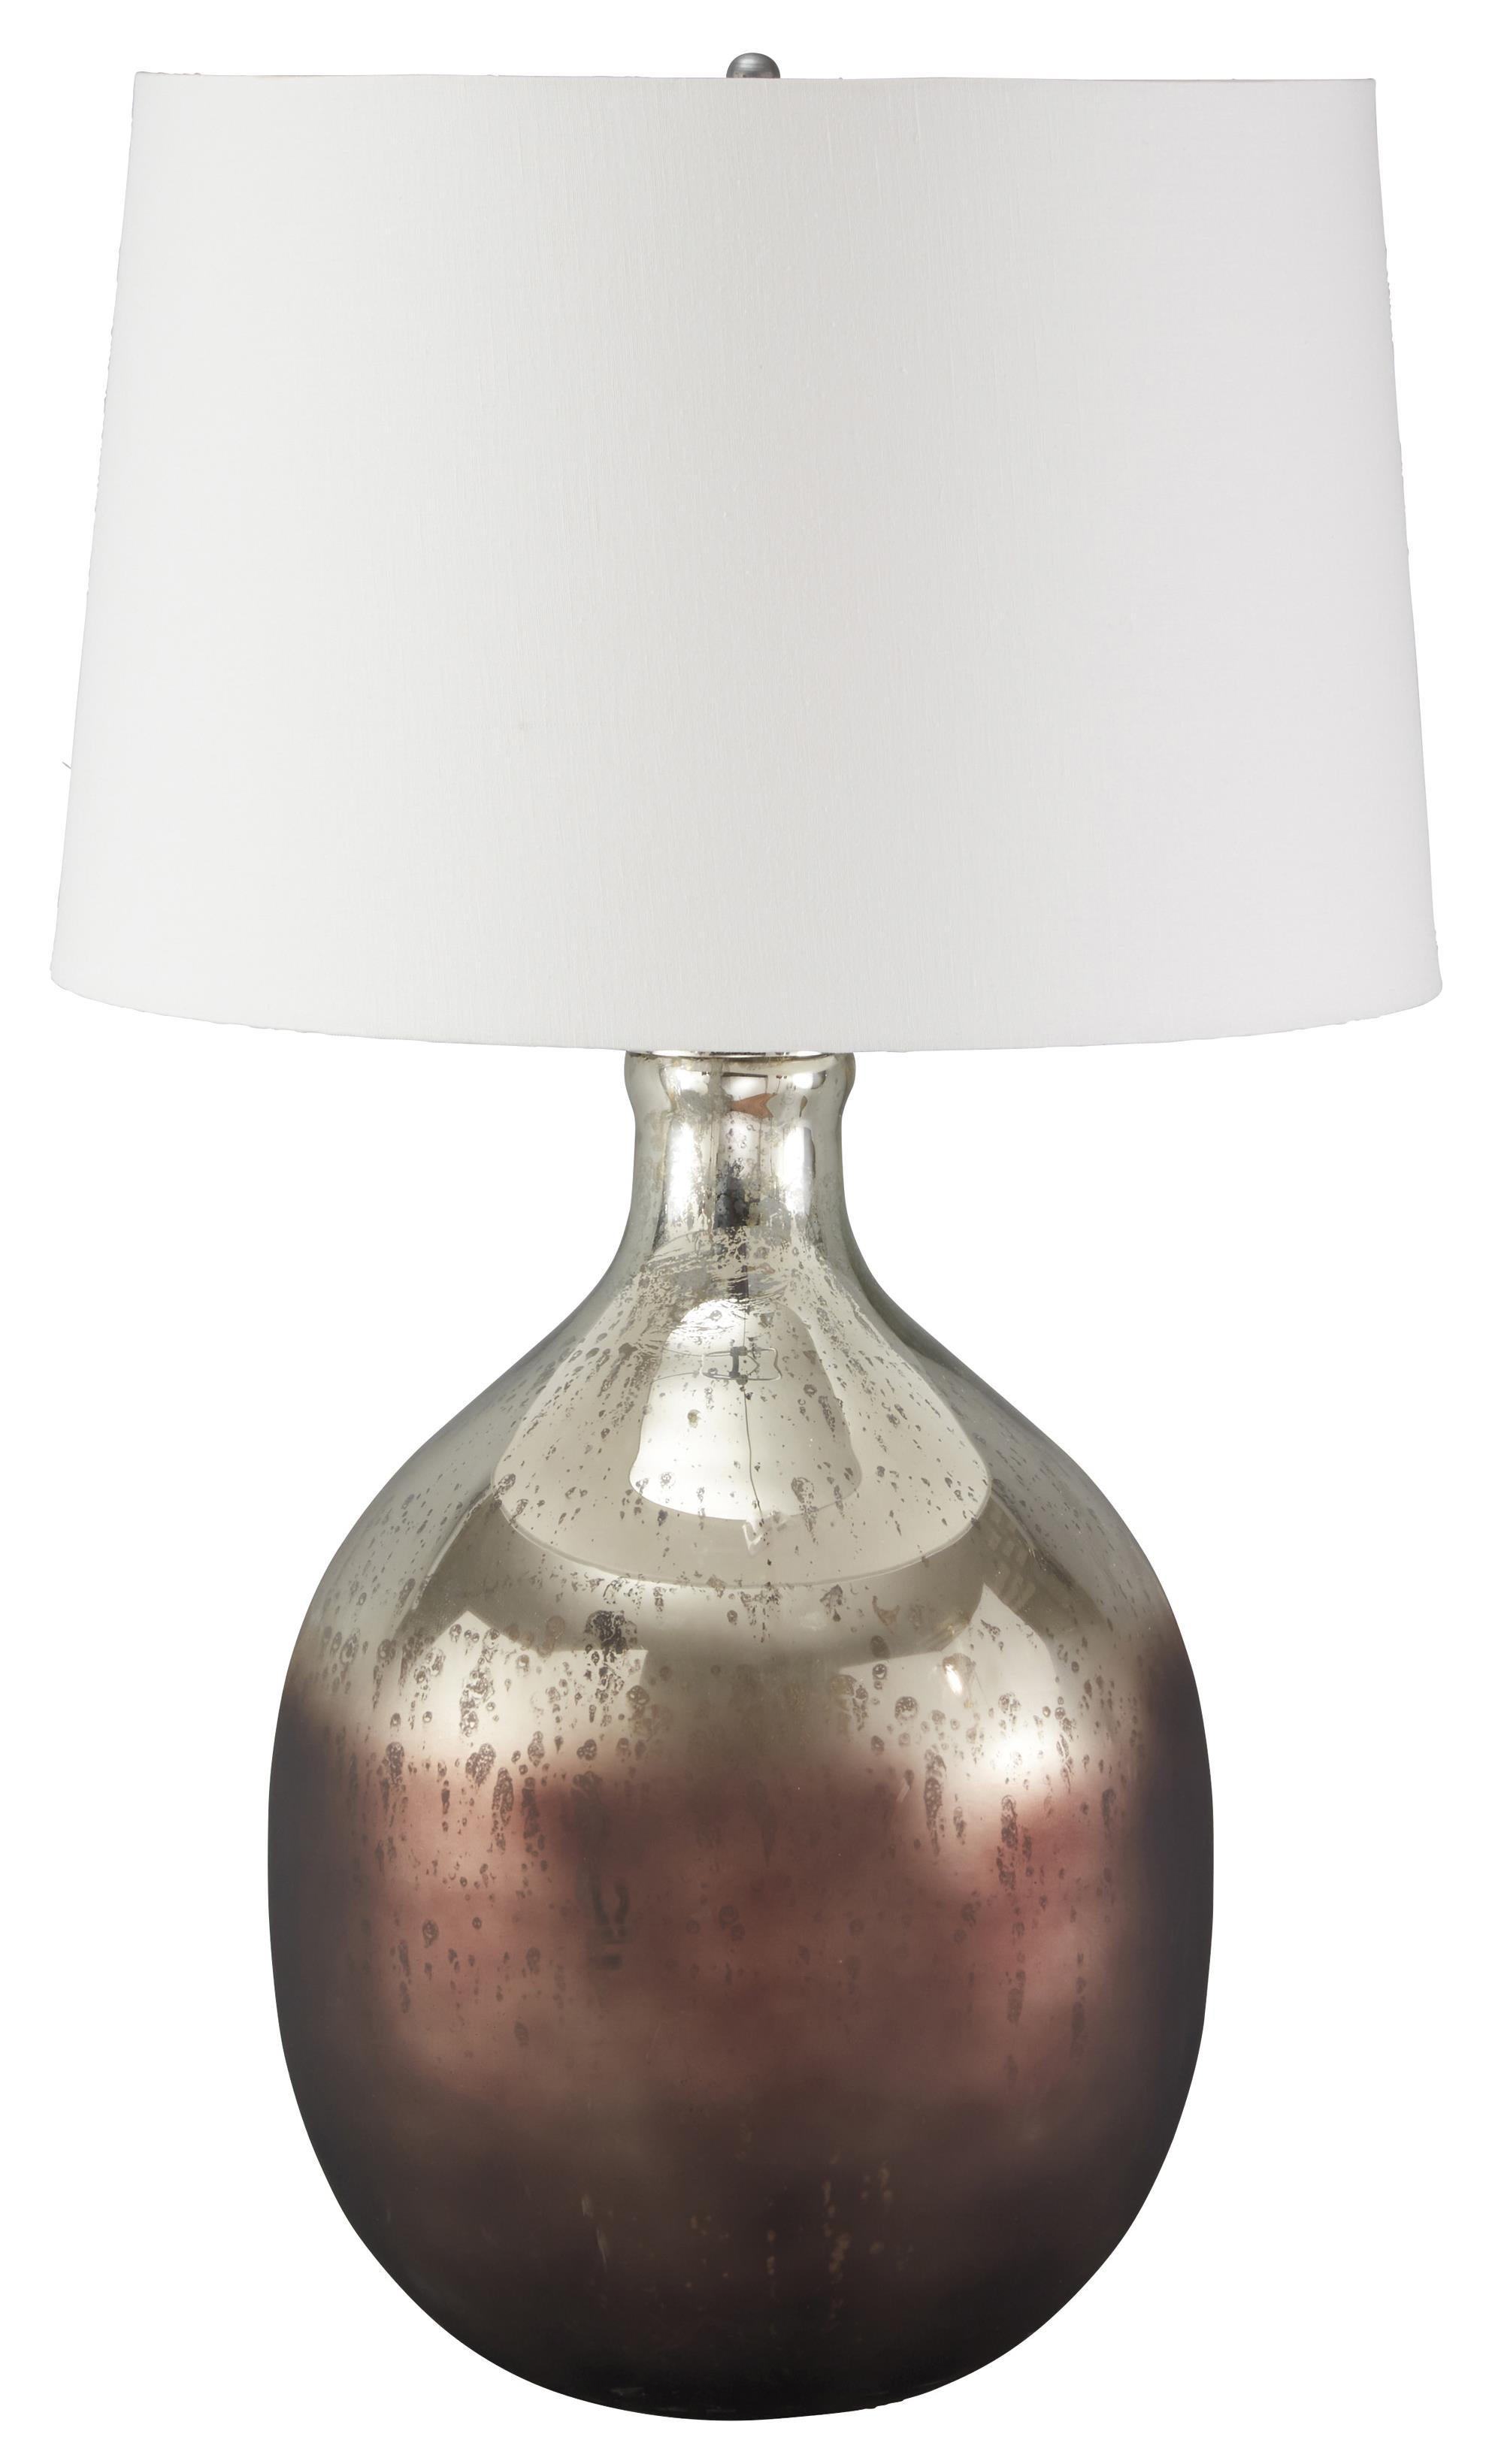 Signature Design by Ashley Lamps - Vintage Style Tabish Glass Table Lamp - Item Number: L430294